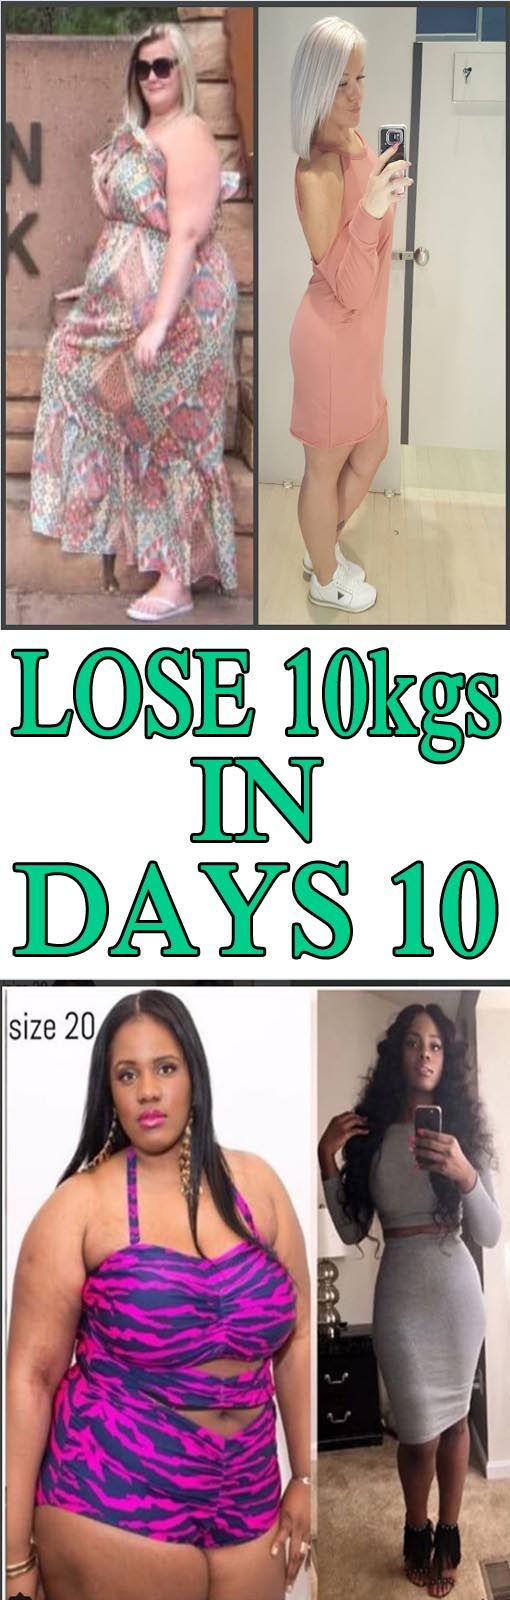 How to lose 10kg in 2 weeks without exercise